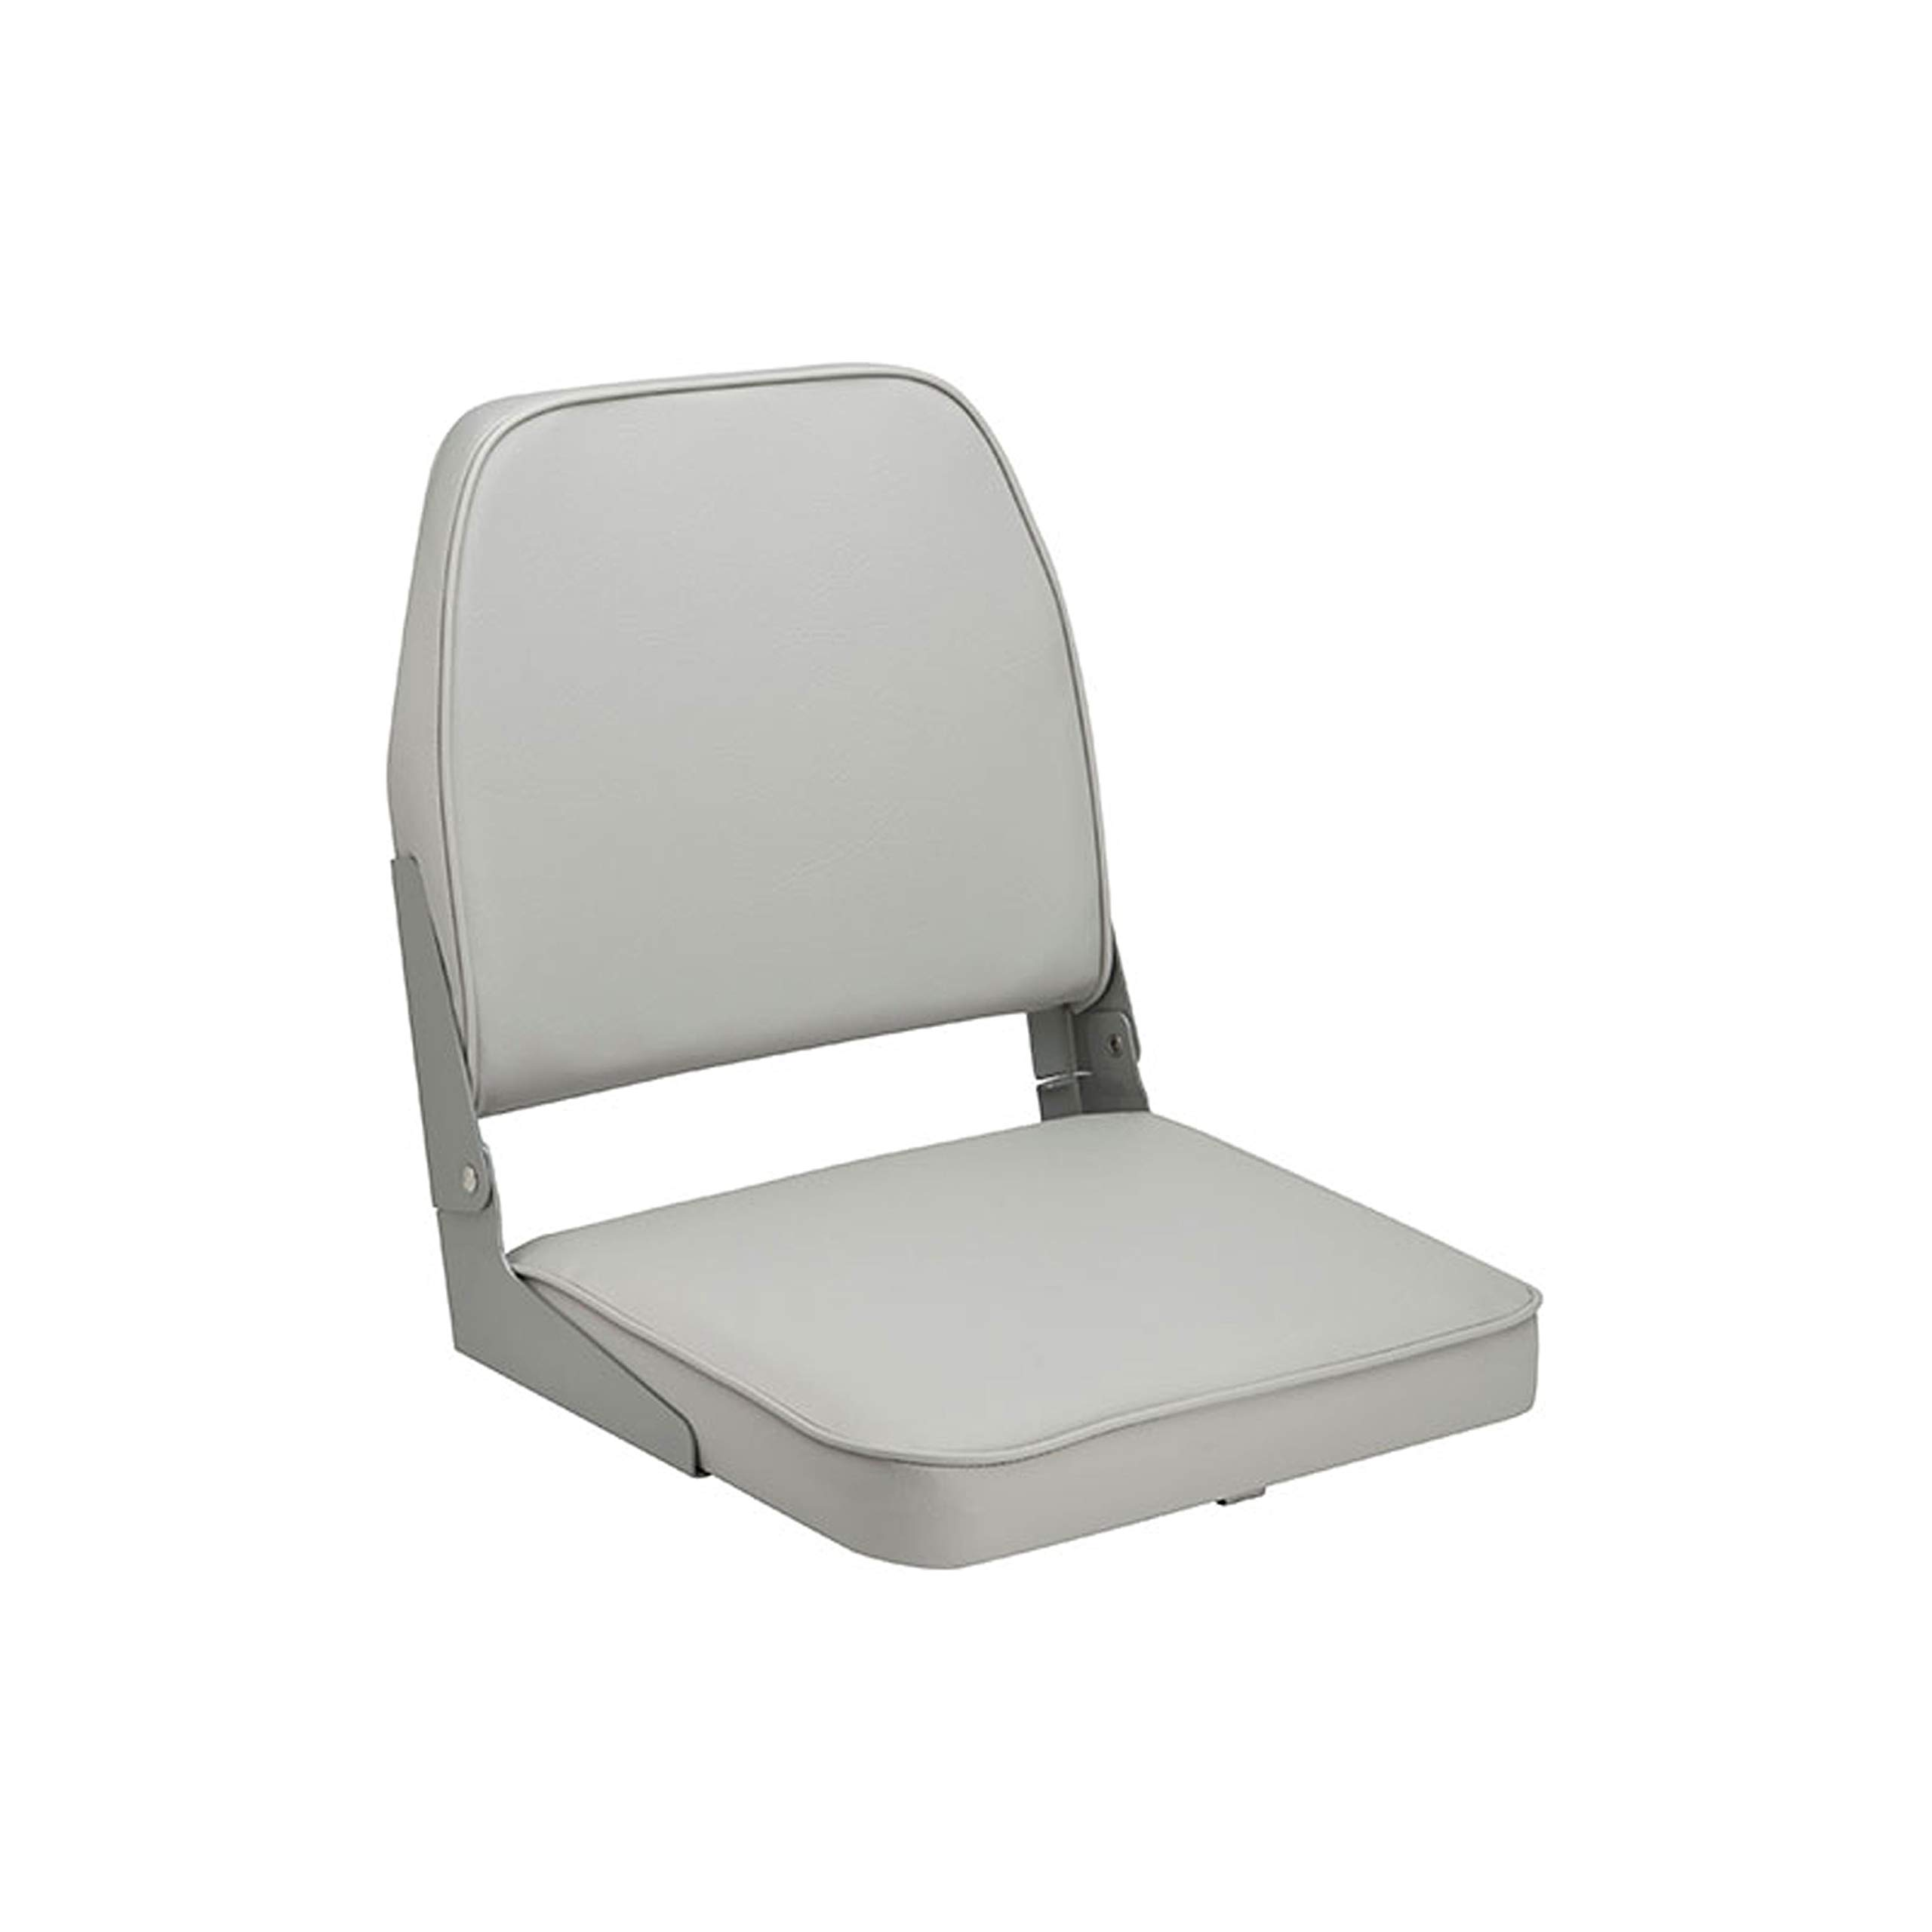 Attwood 98395GY Low Back Fishing Seat - Grey by attwood